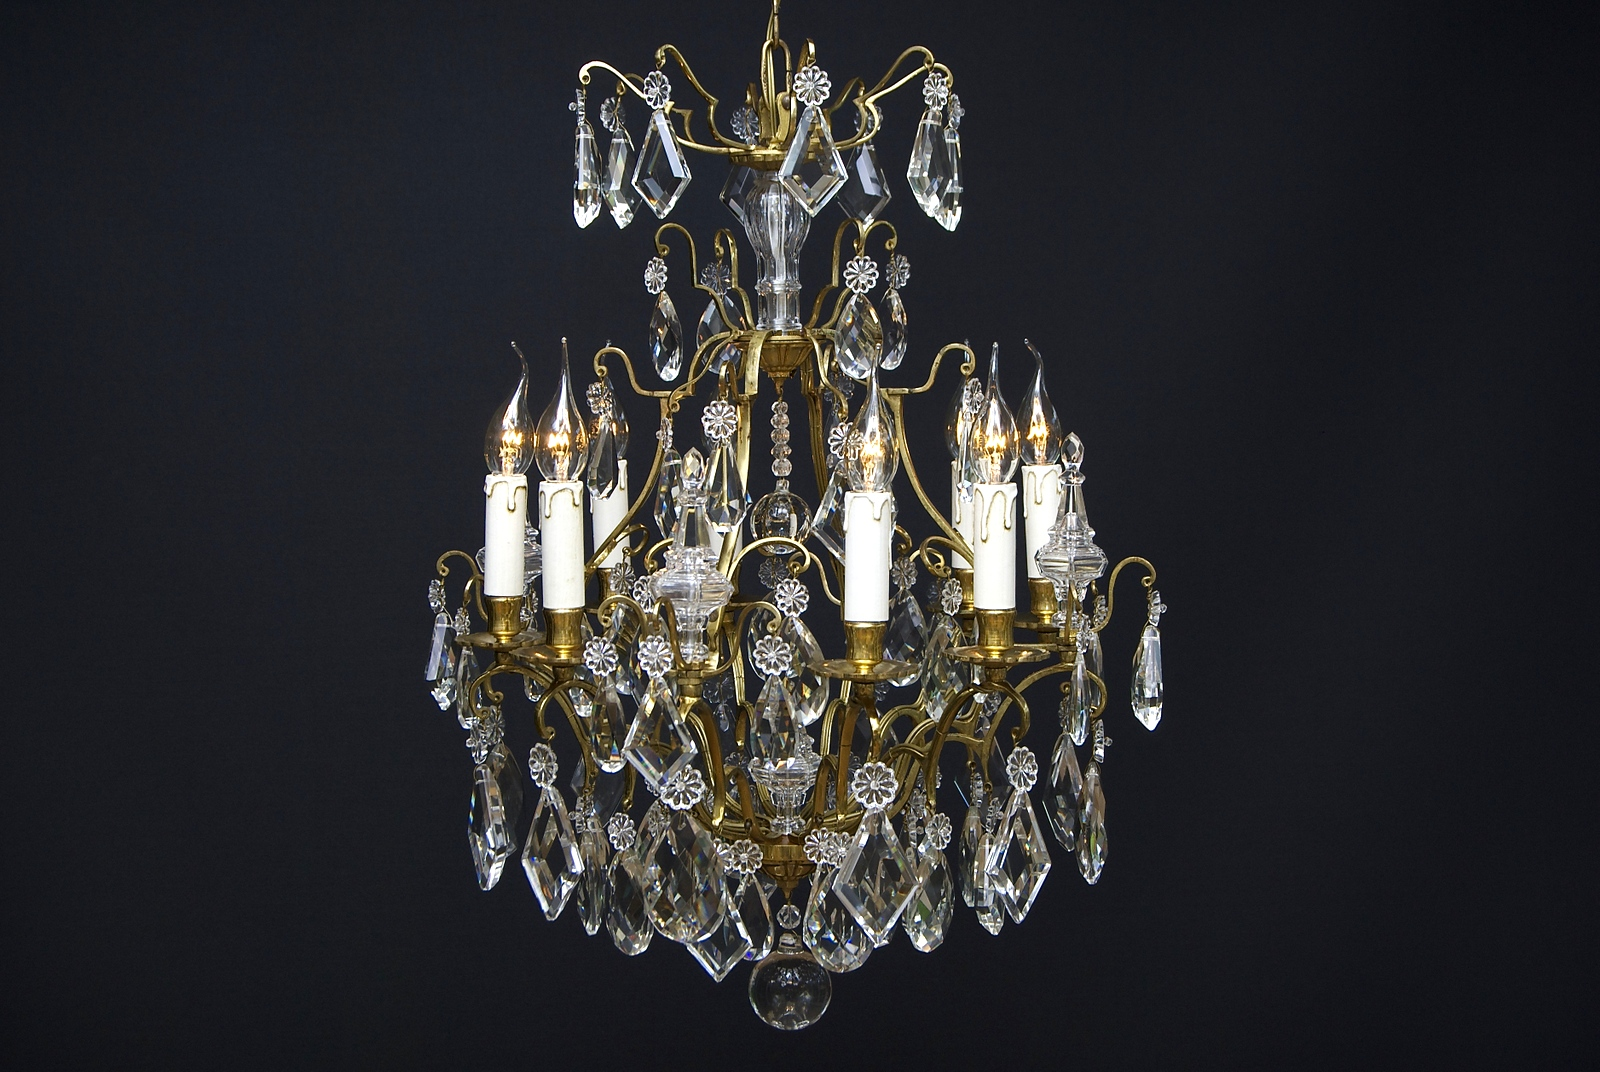 A 20th century French chandelier with 8 light